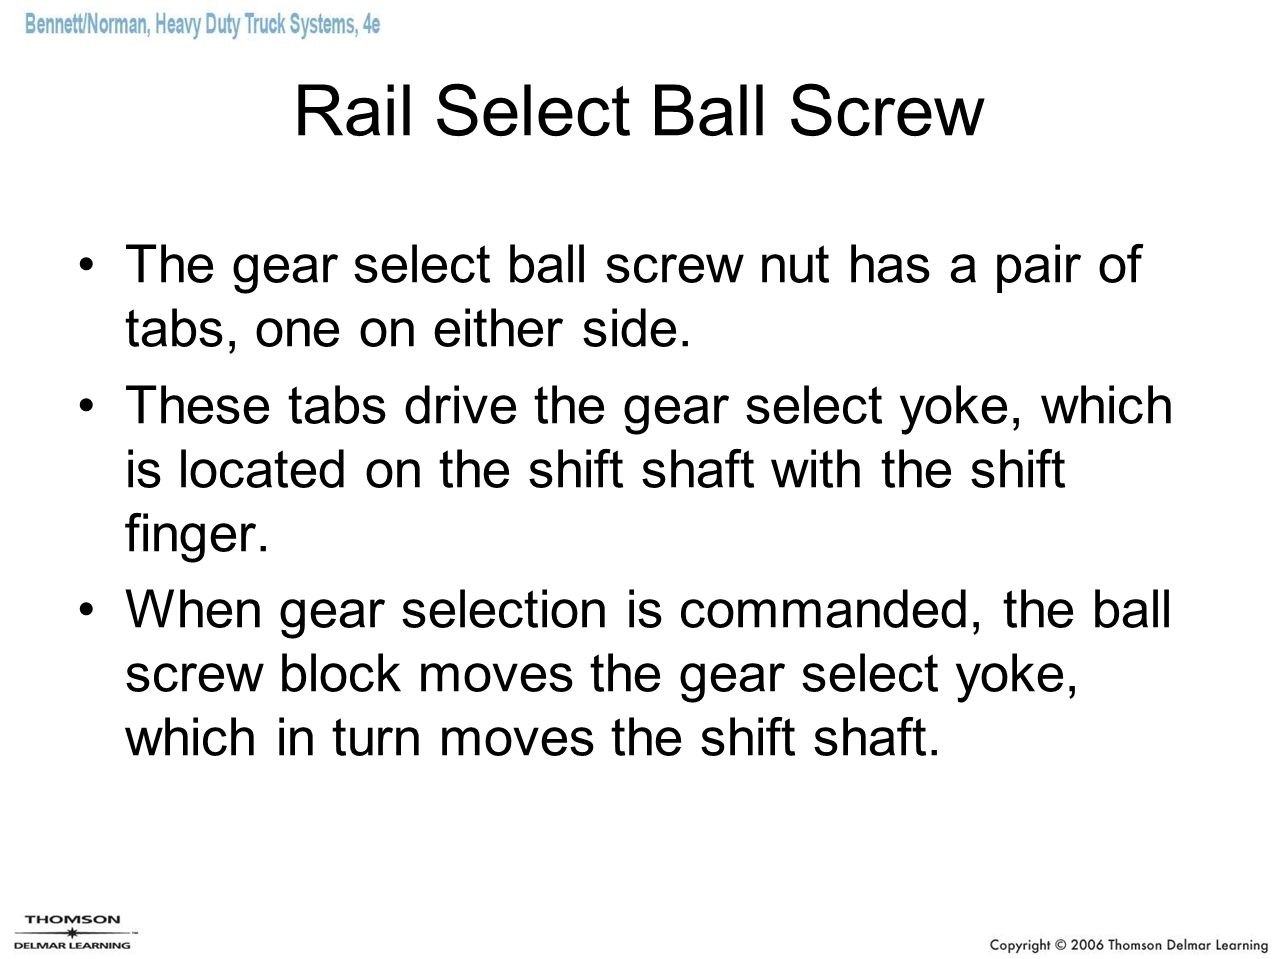 Rail Select Ball Screw The gear select ball screw nut has a pair of tabs, one on either side.